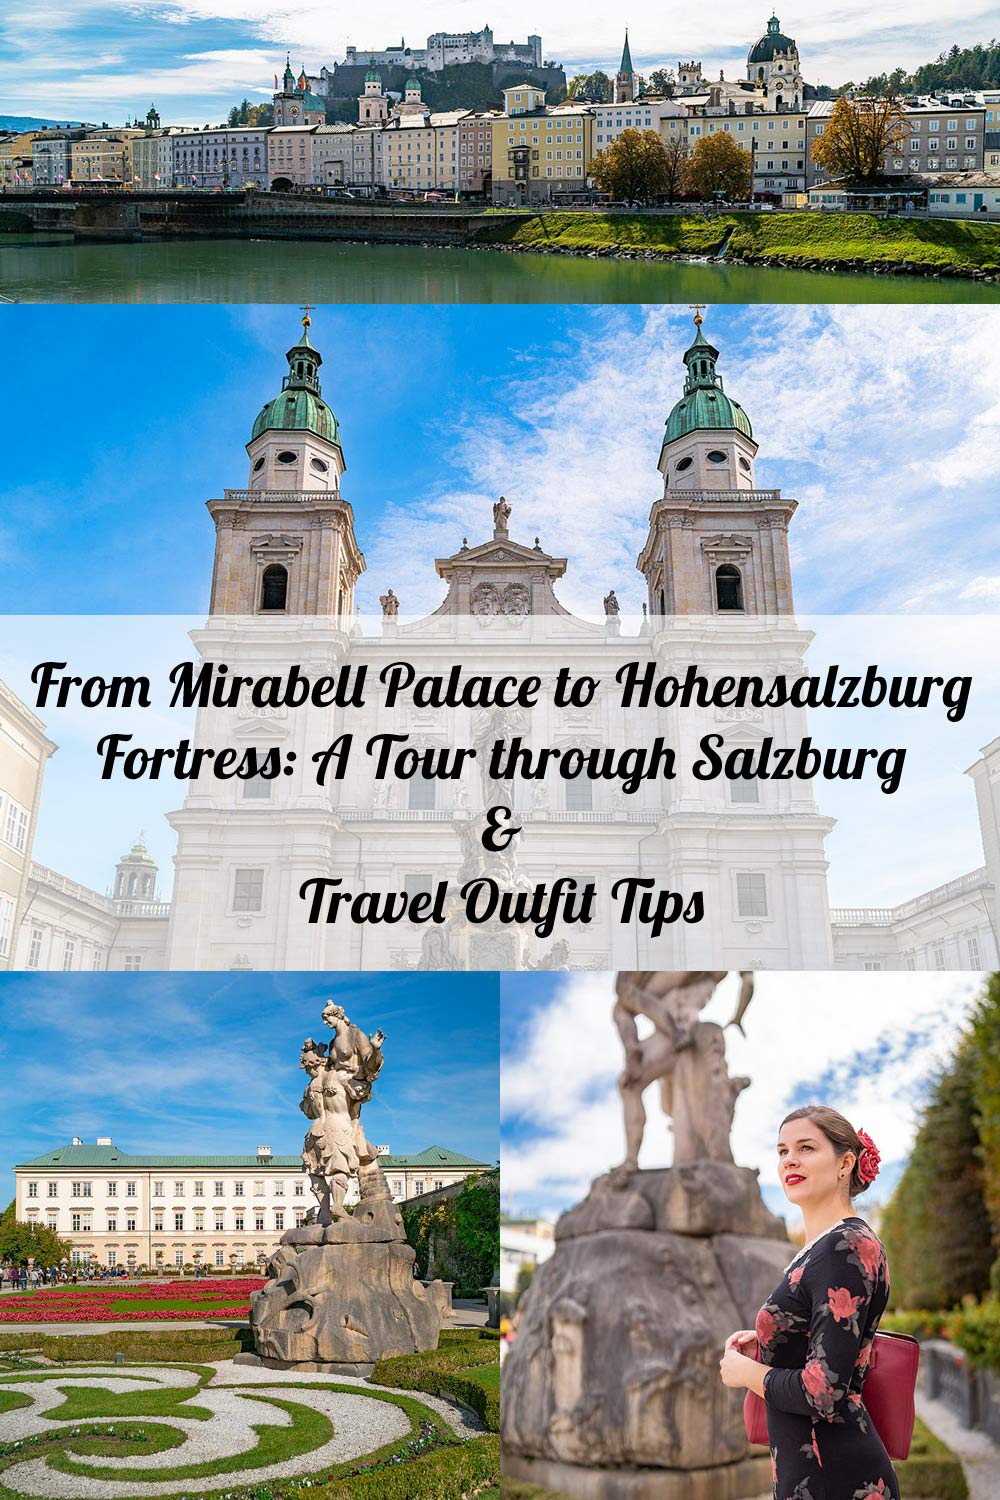 From Mirabell Palace to Hohensalzburg Fortress: A Tour through Salzburg in a Rose Dress